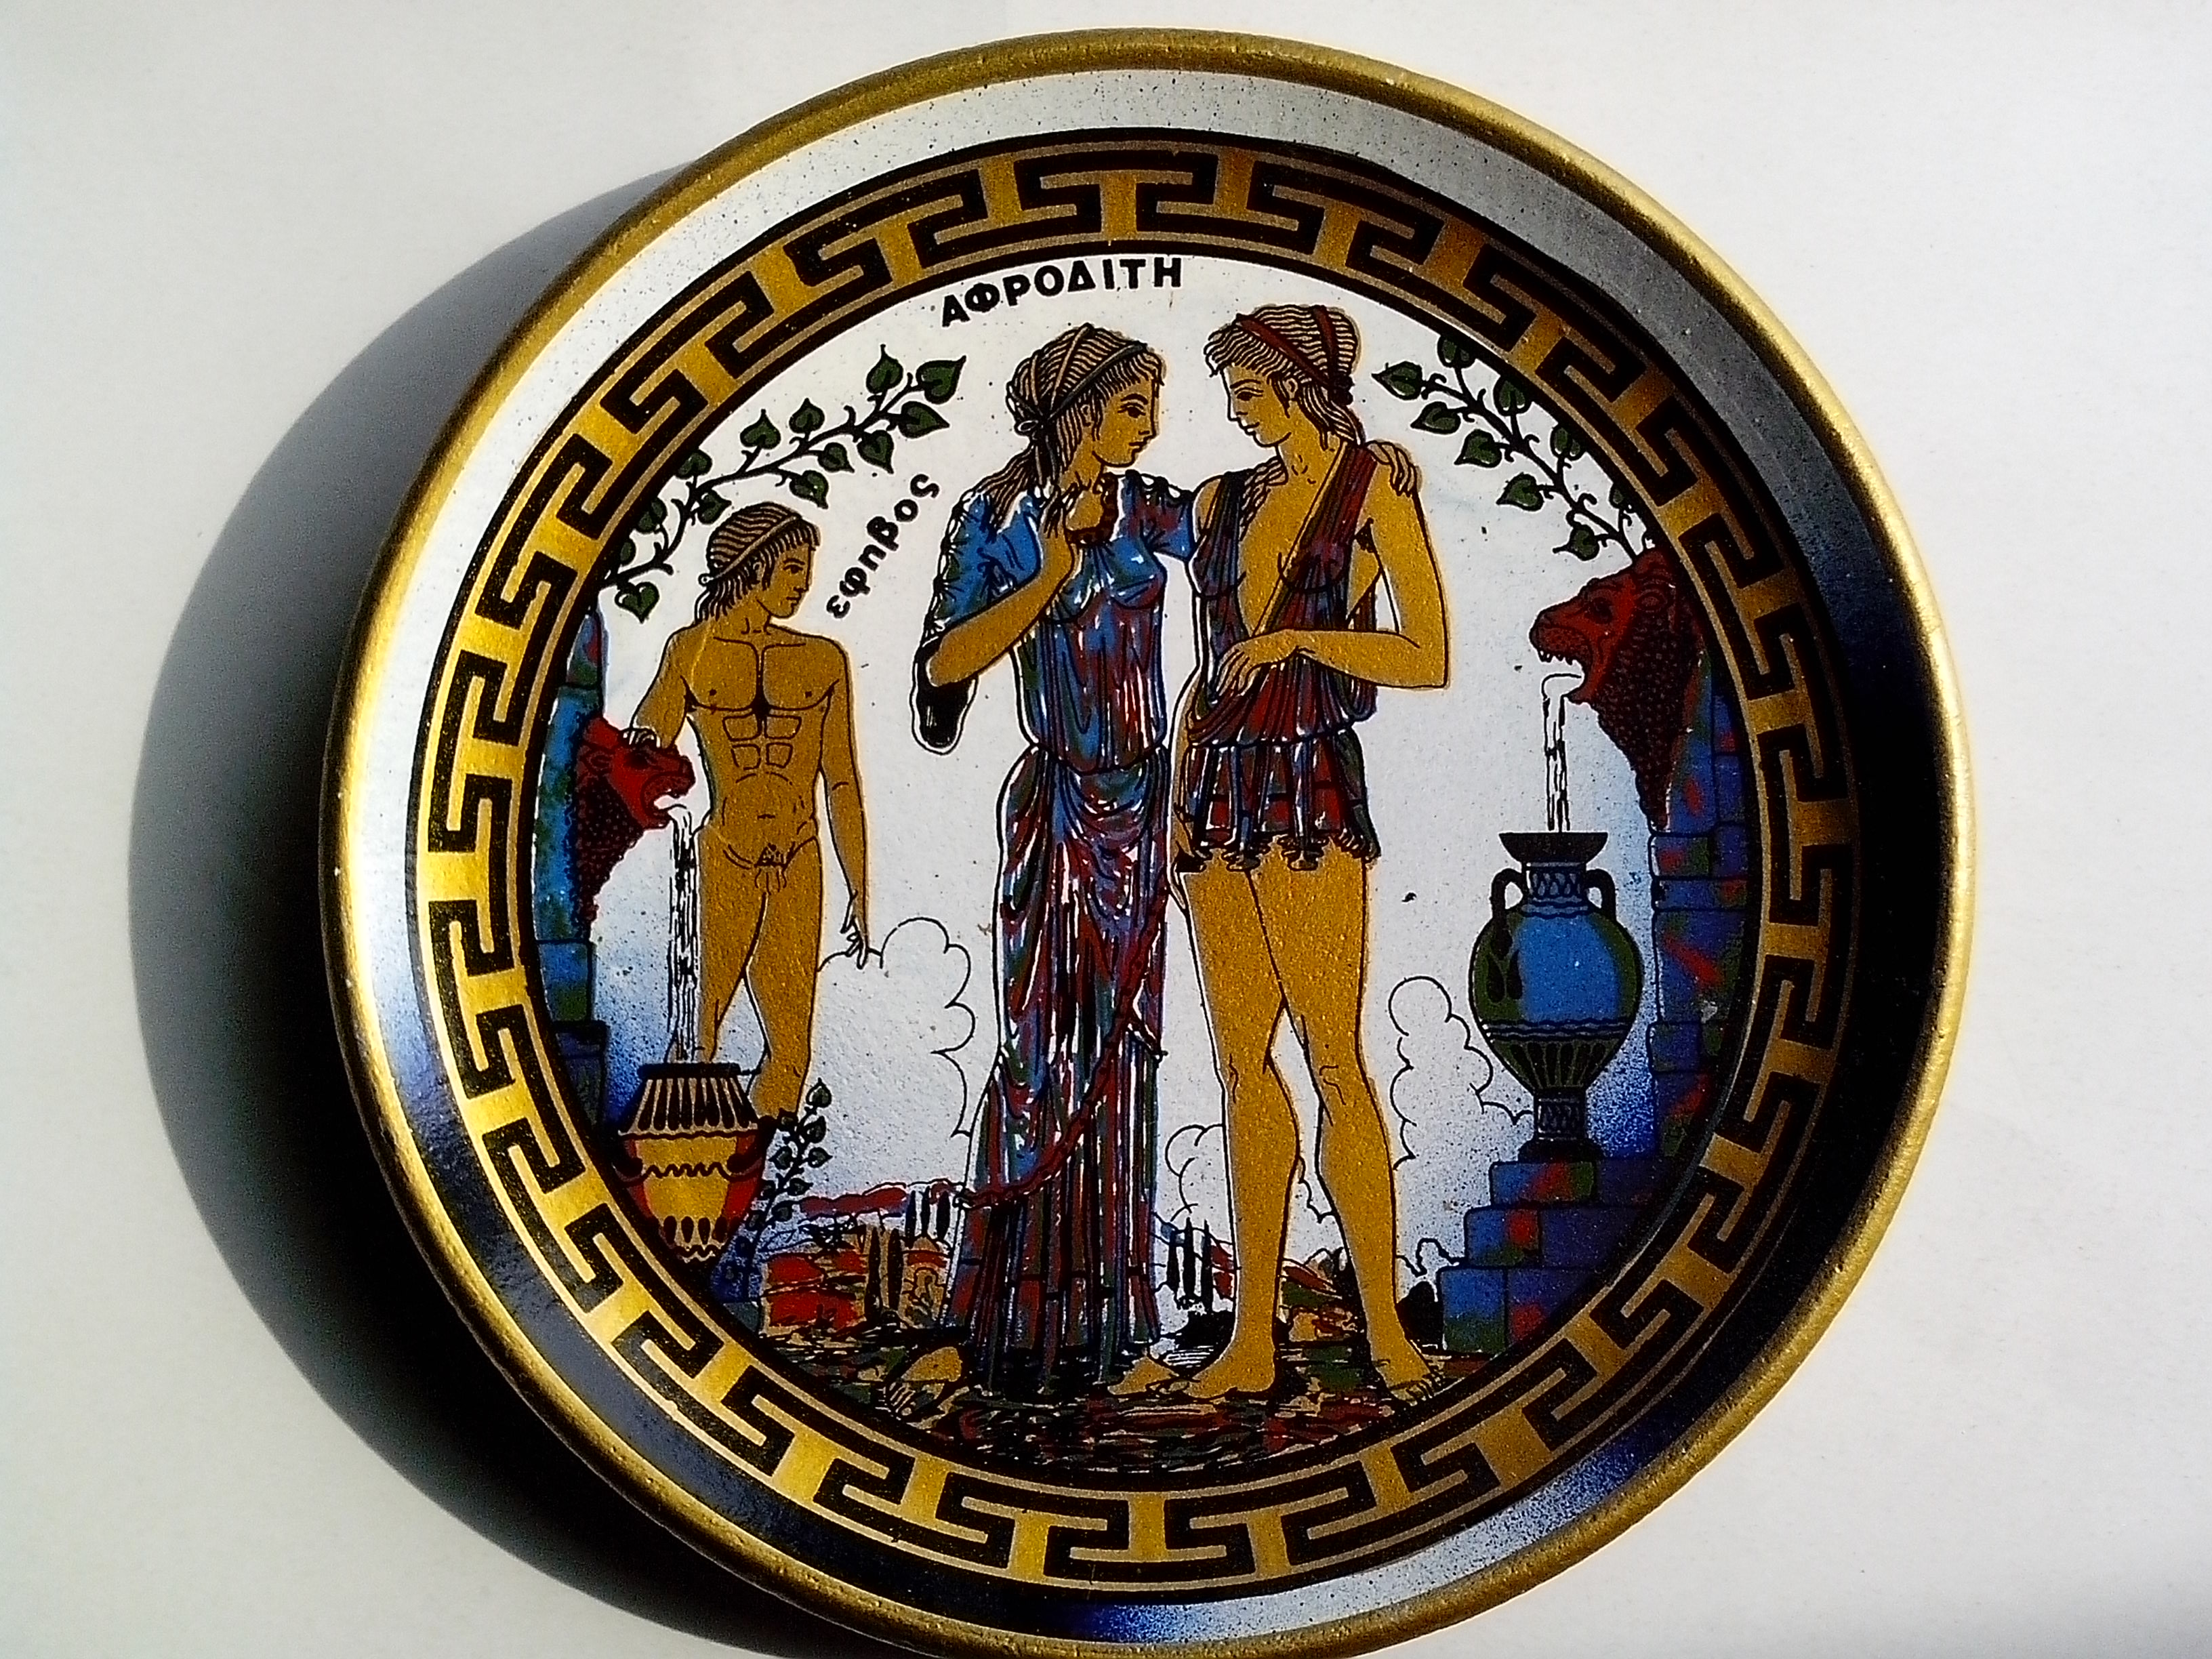 Free picture: ancient, Greek, art, plate, pottery ... Fishing Lures